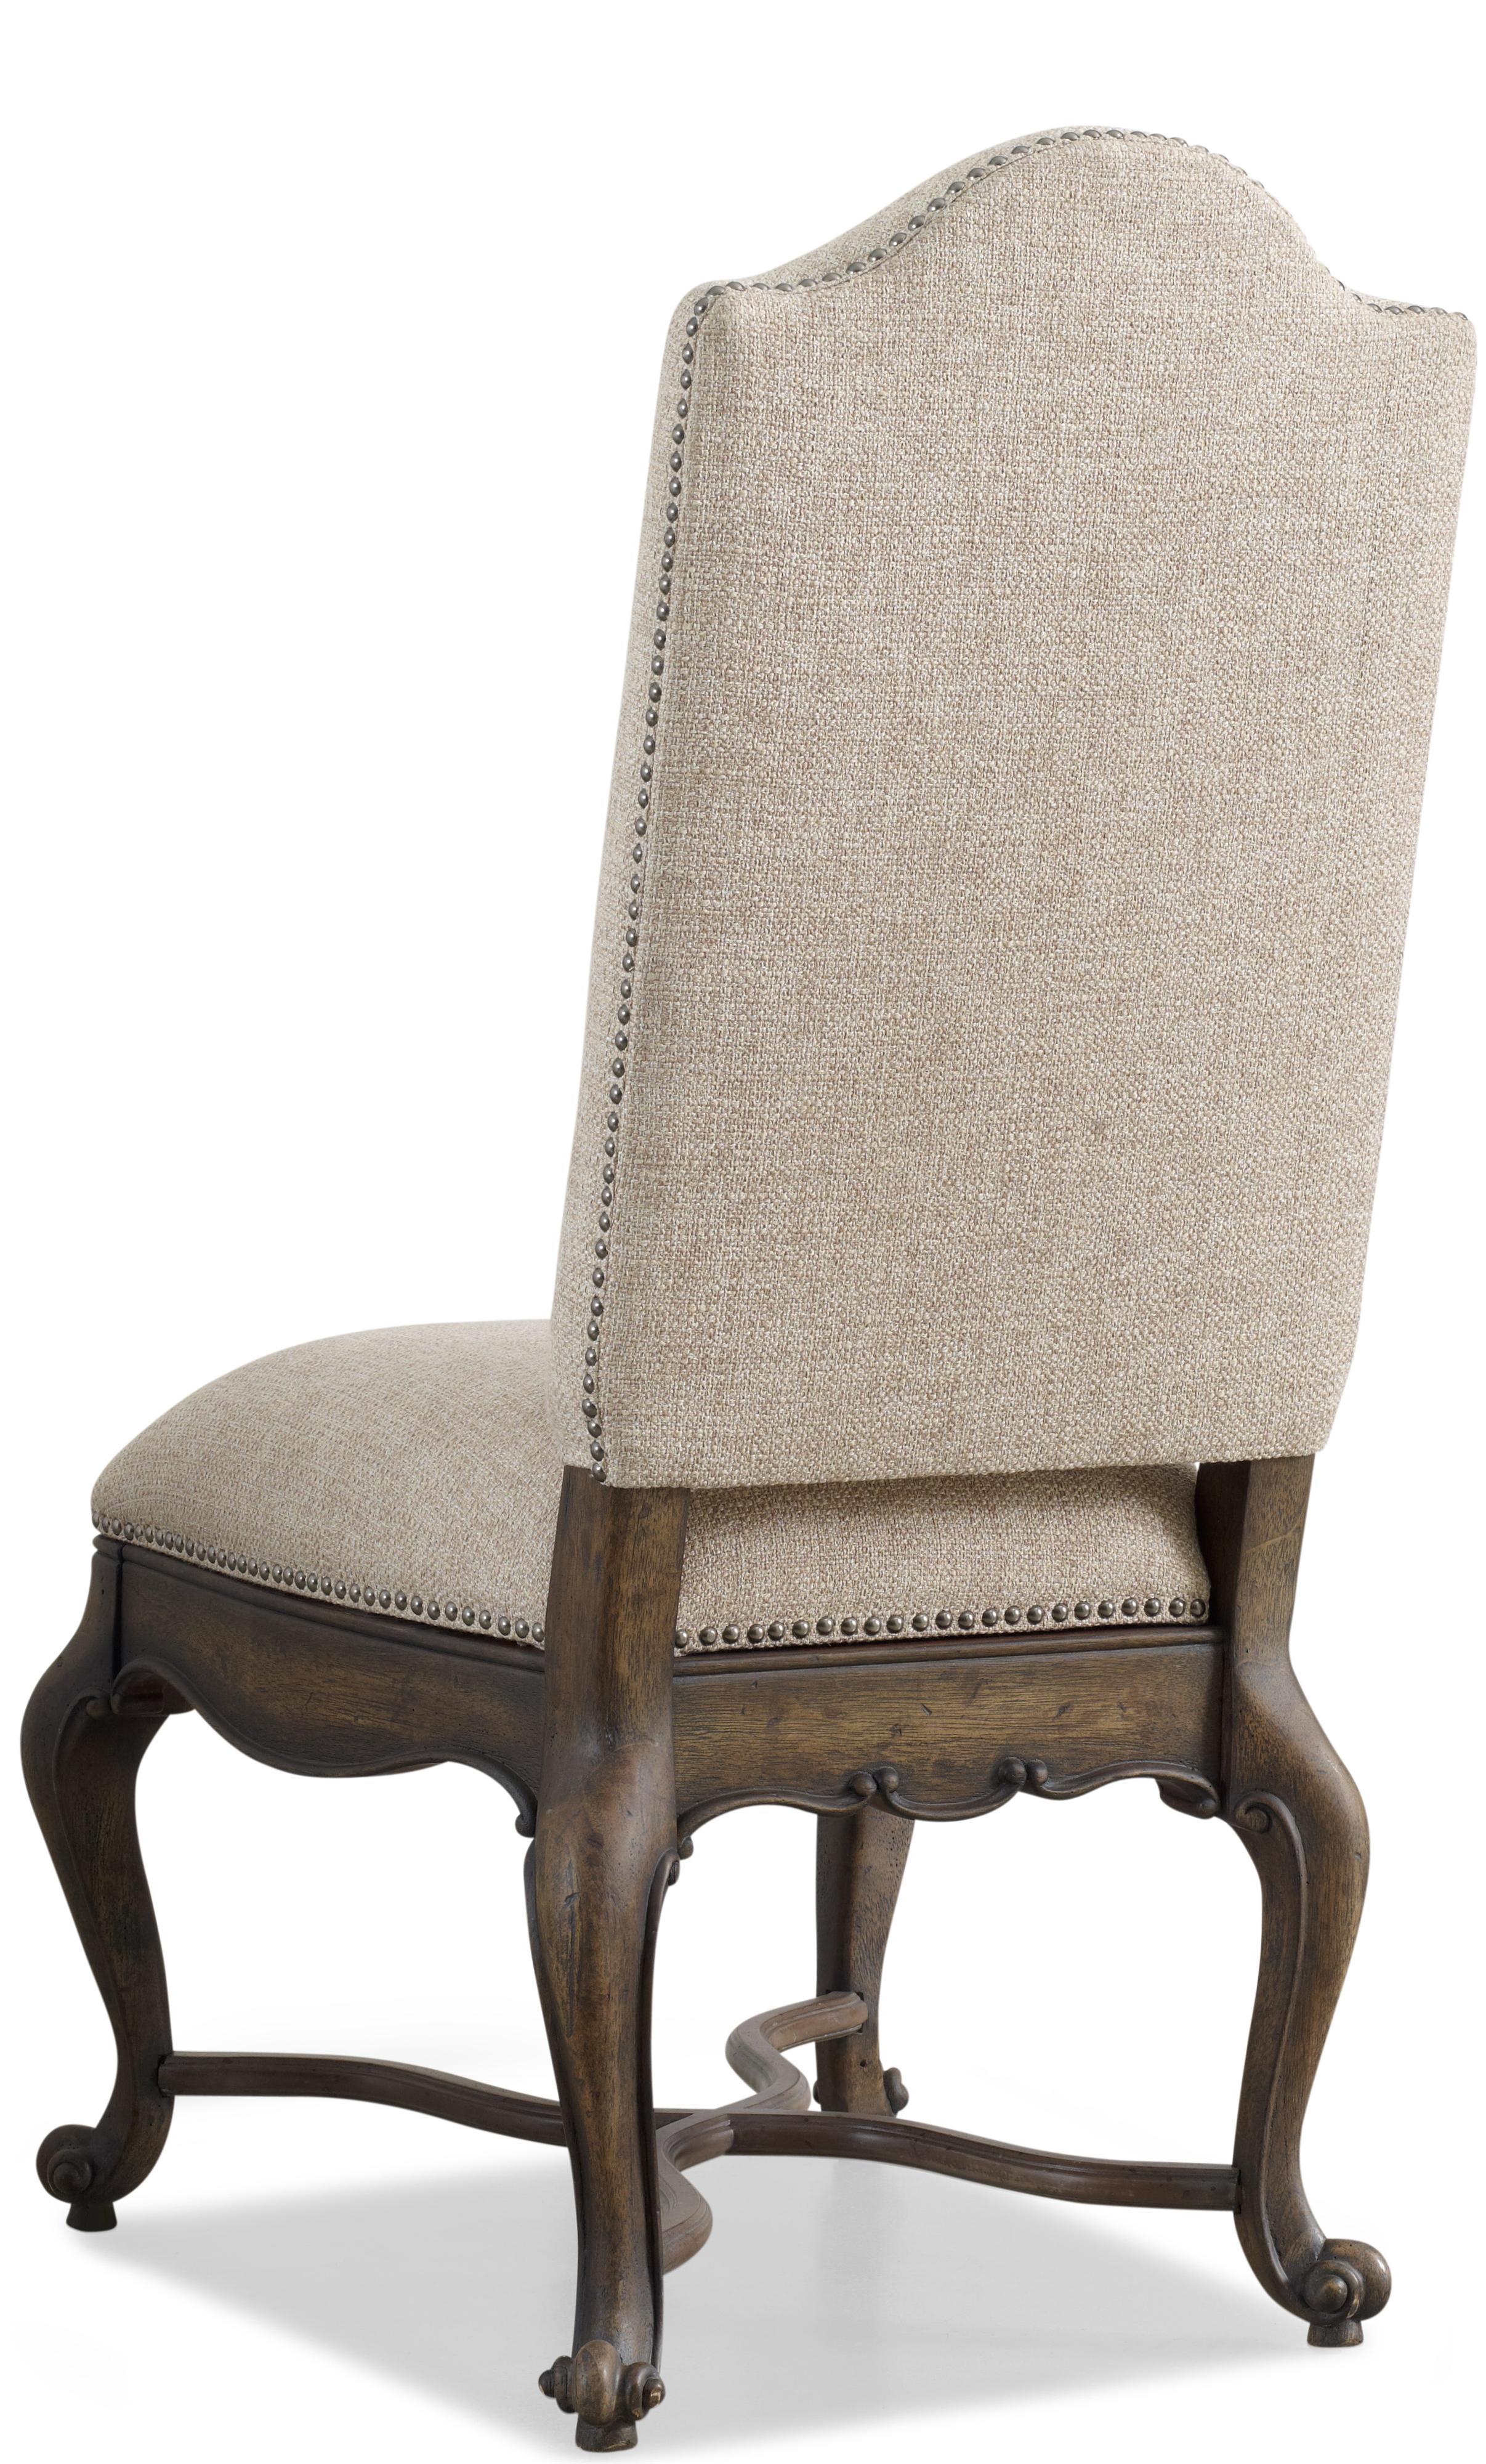 Rhapsody Upholstered Side Chair by Hooker Furniture at Alison Craig Home Furnishings